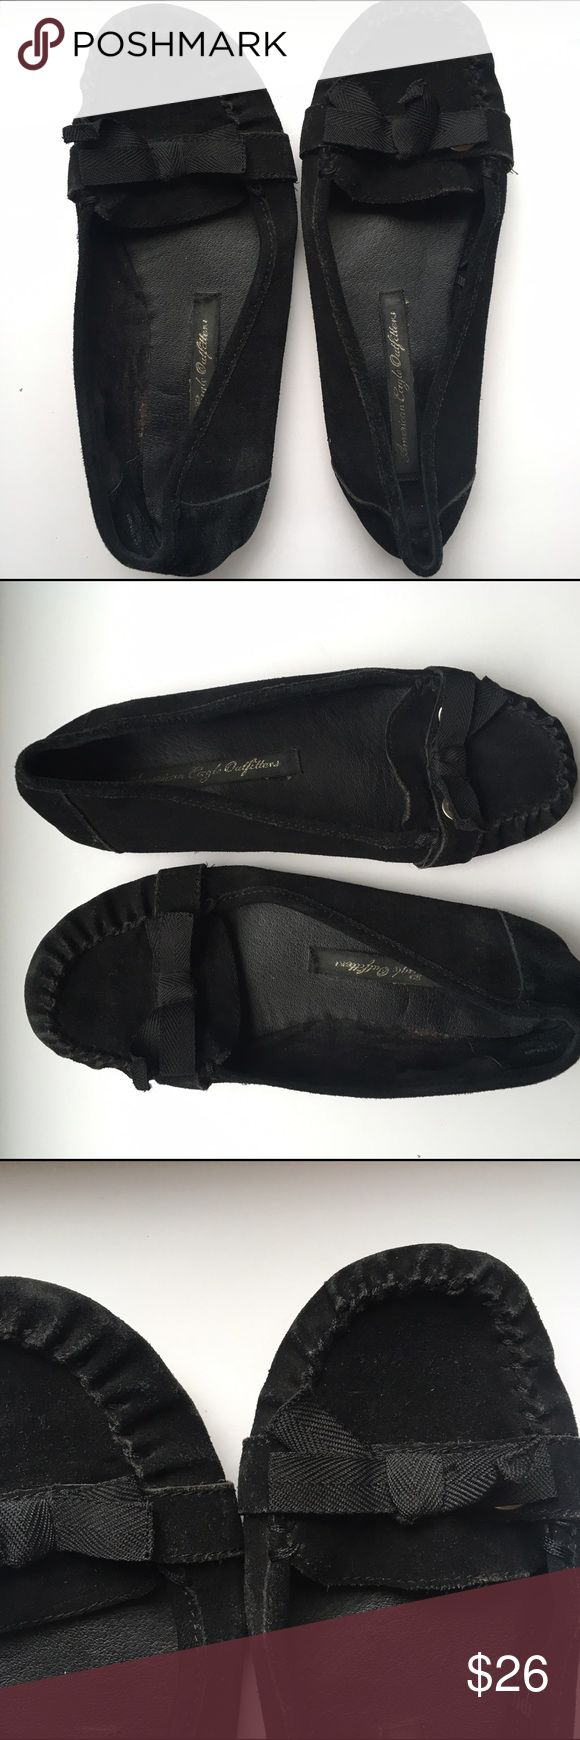 American Eagle Outfitters Black bow Loafers American Eagle Outfitters Black loafers. Comfortable with cute bow across toes. American Eagle Outfitters Shoes Flats & Loafers